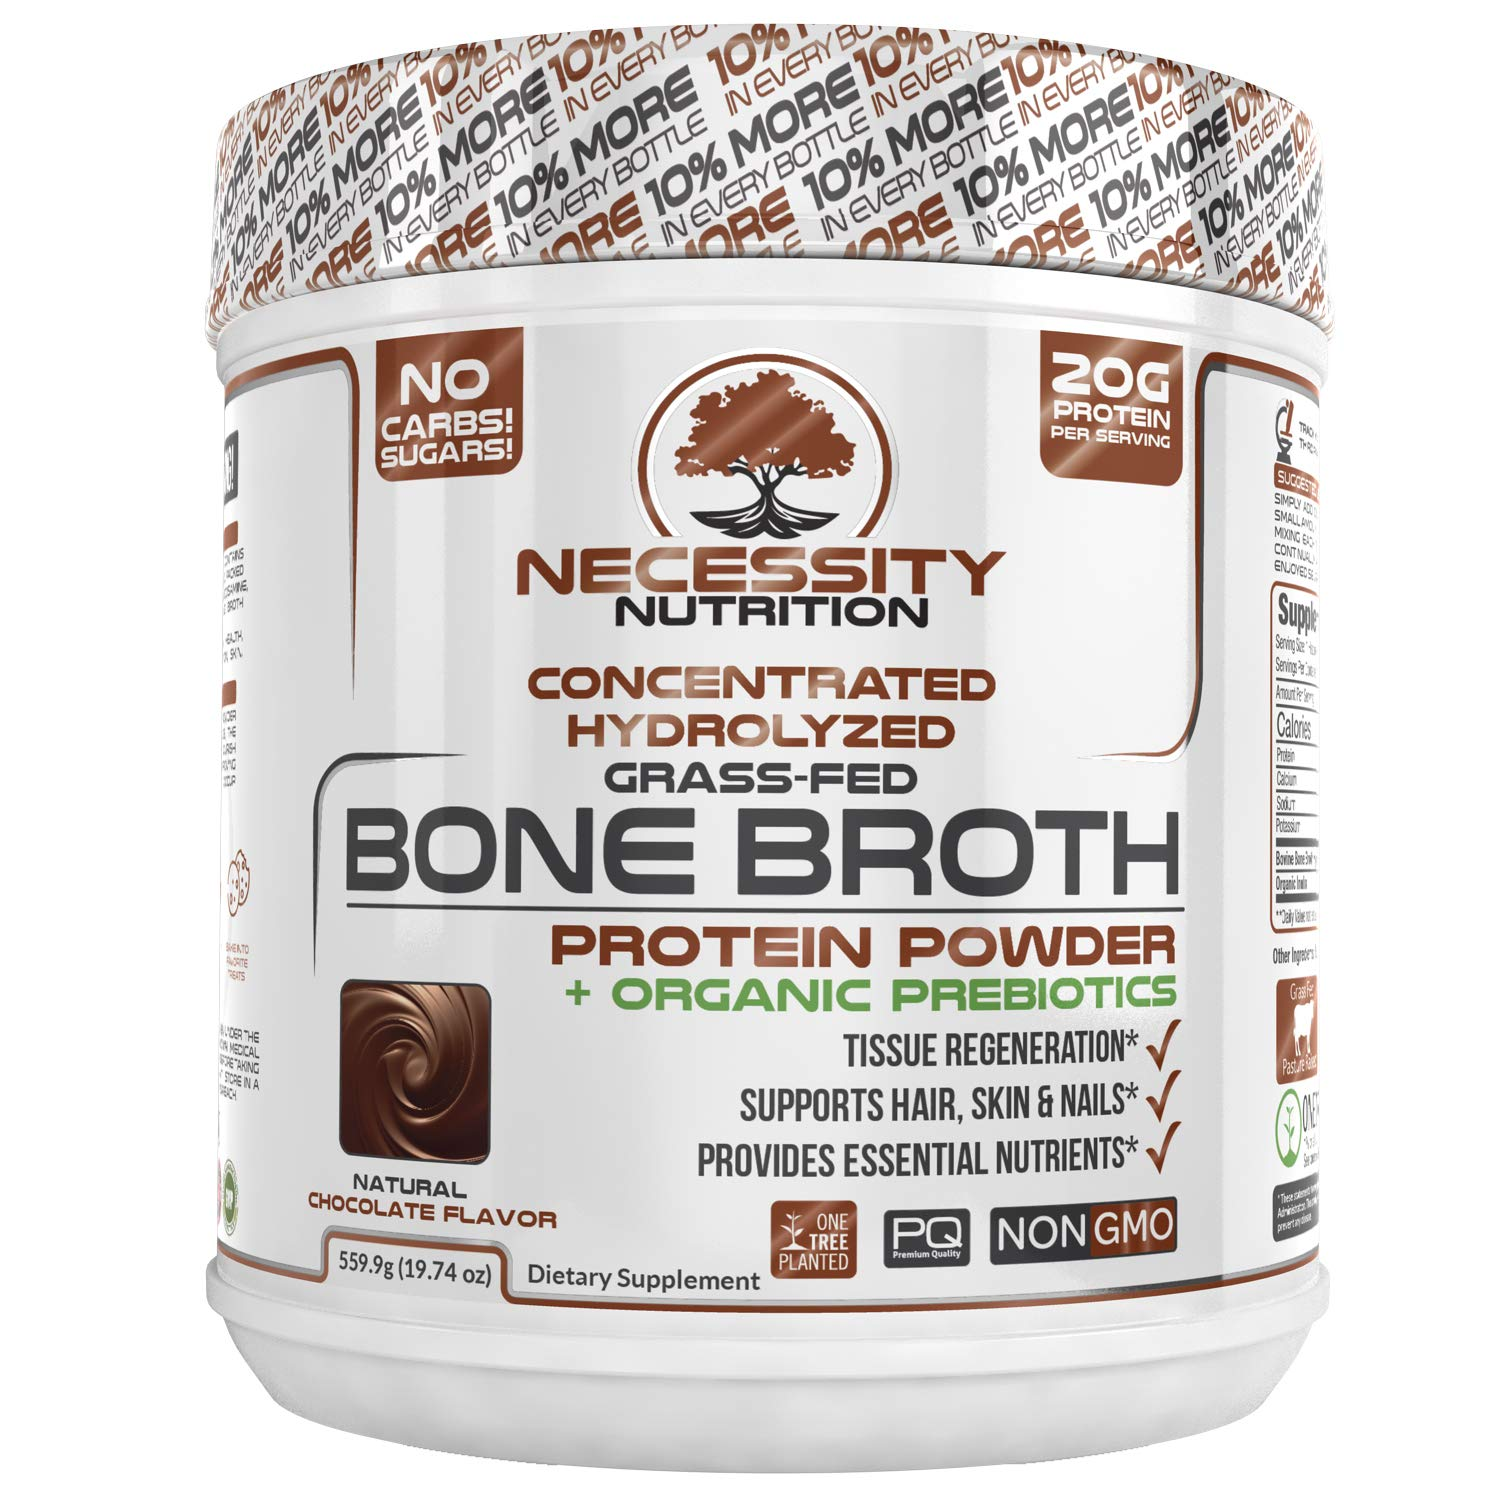 Bone Broth Chocolate Protein Powder - Natural & Pure | Paleo & Keto Friendly | Gluten Free, Low Carb & Non GMO Grass Fed Pasture Raised Bovine - Premium Gut Health by Necessity Nutrition